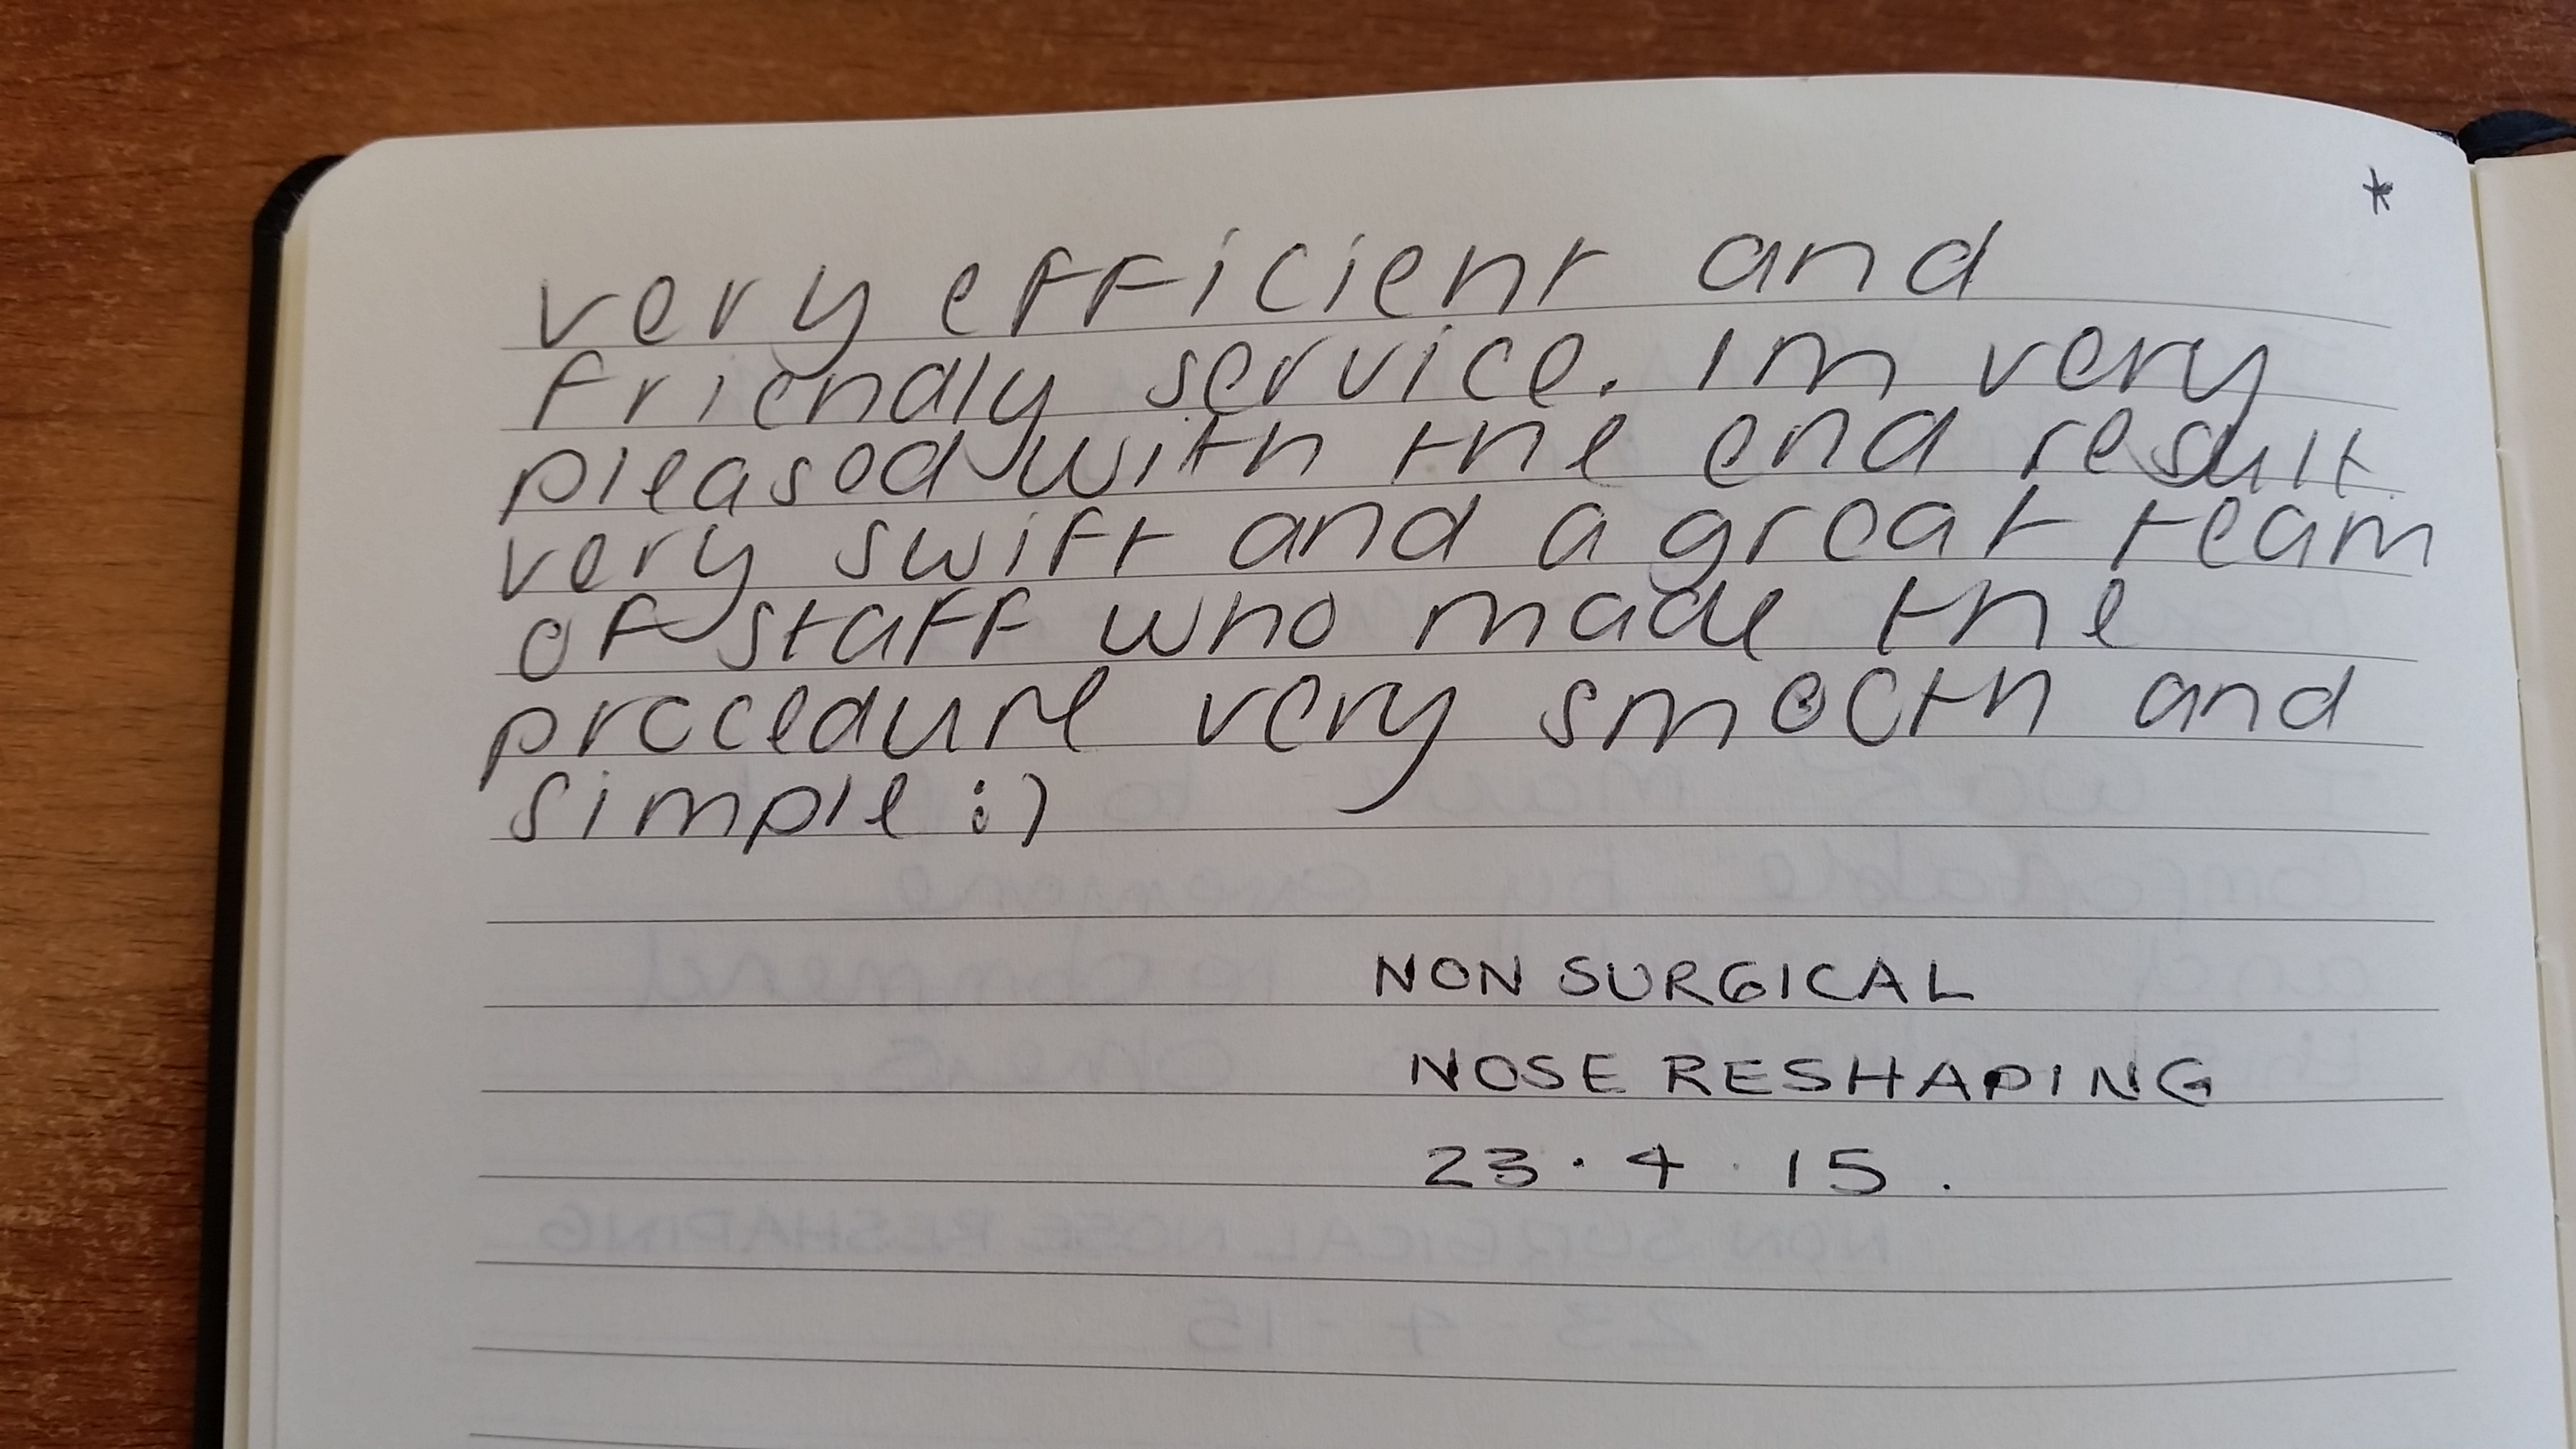 Non Surgical Nose Reshaping Patient Review - Smooth and Simple